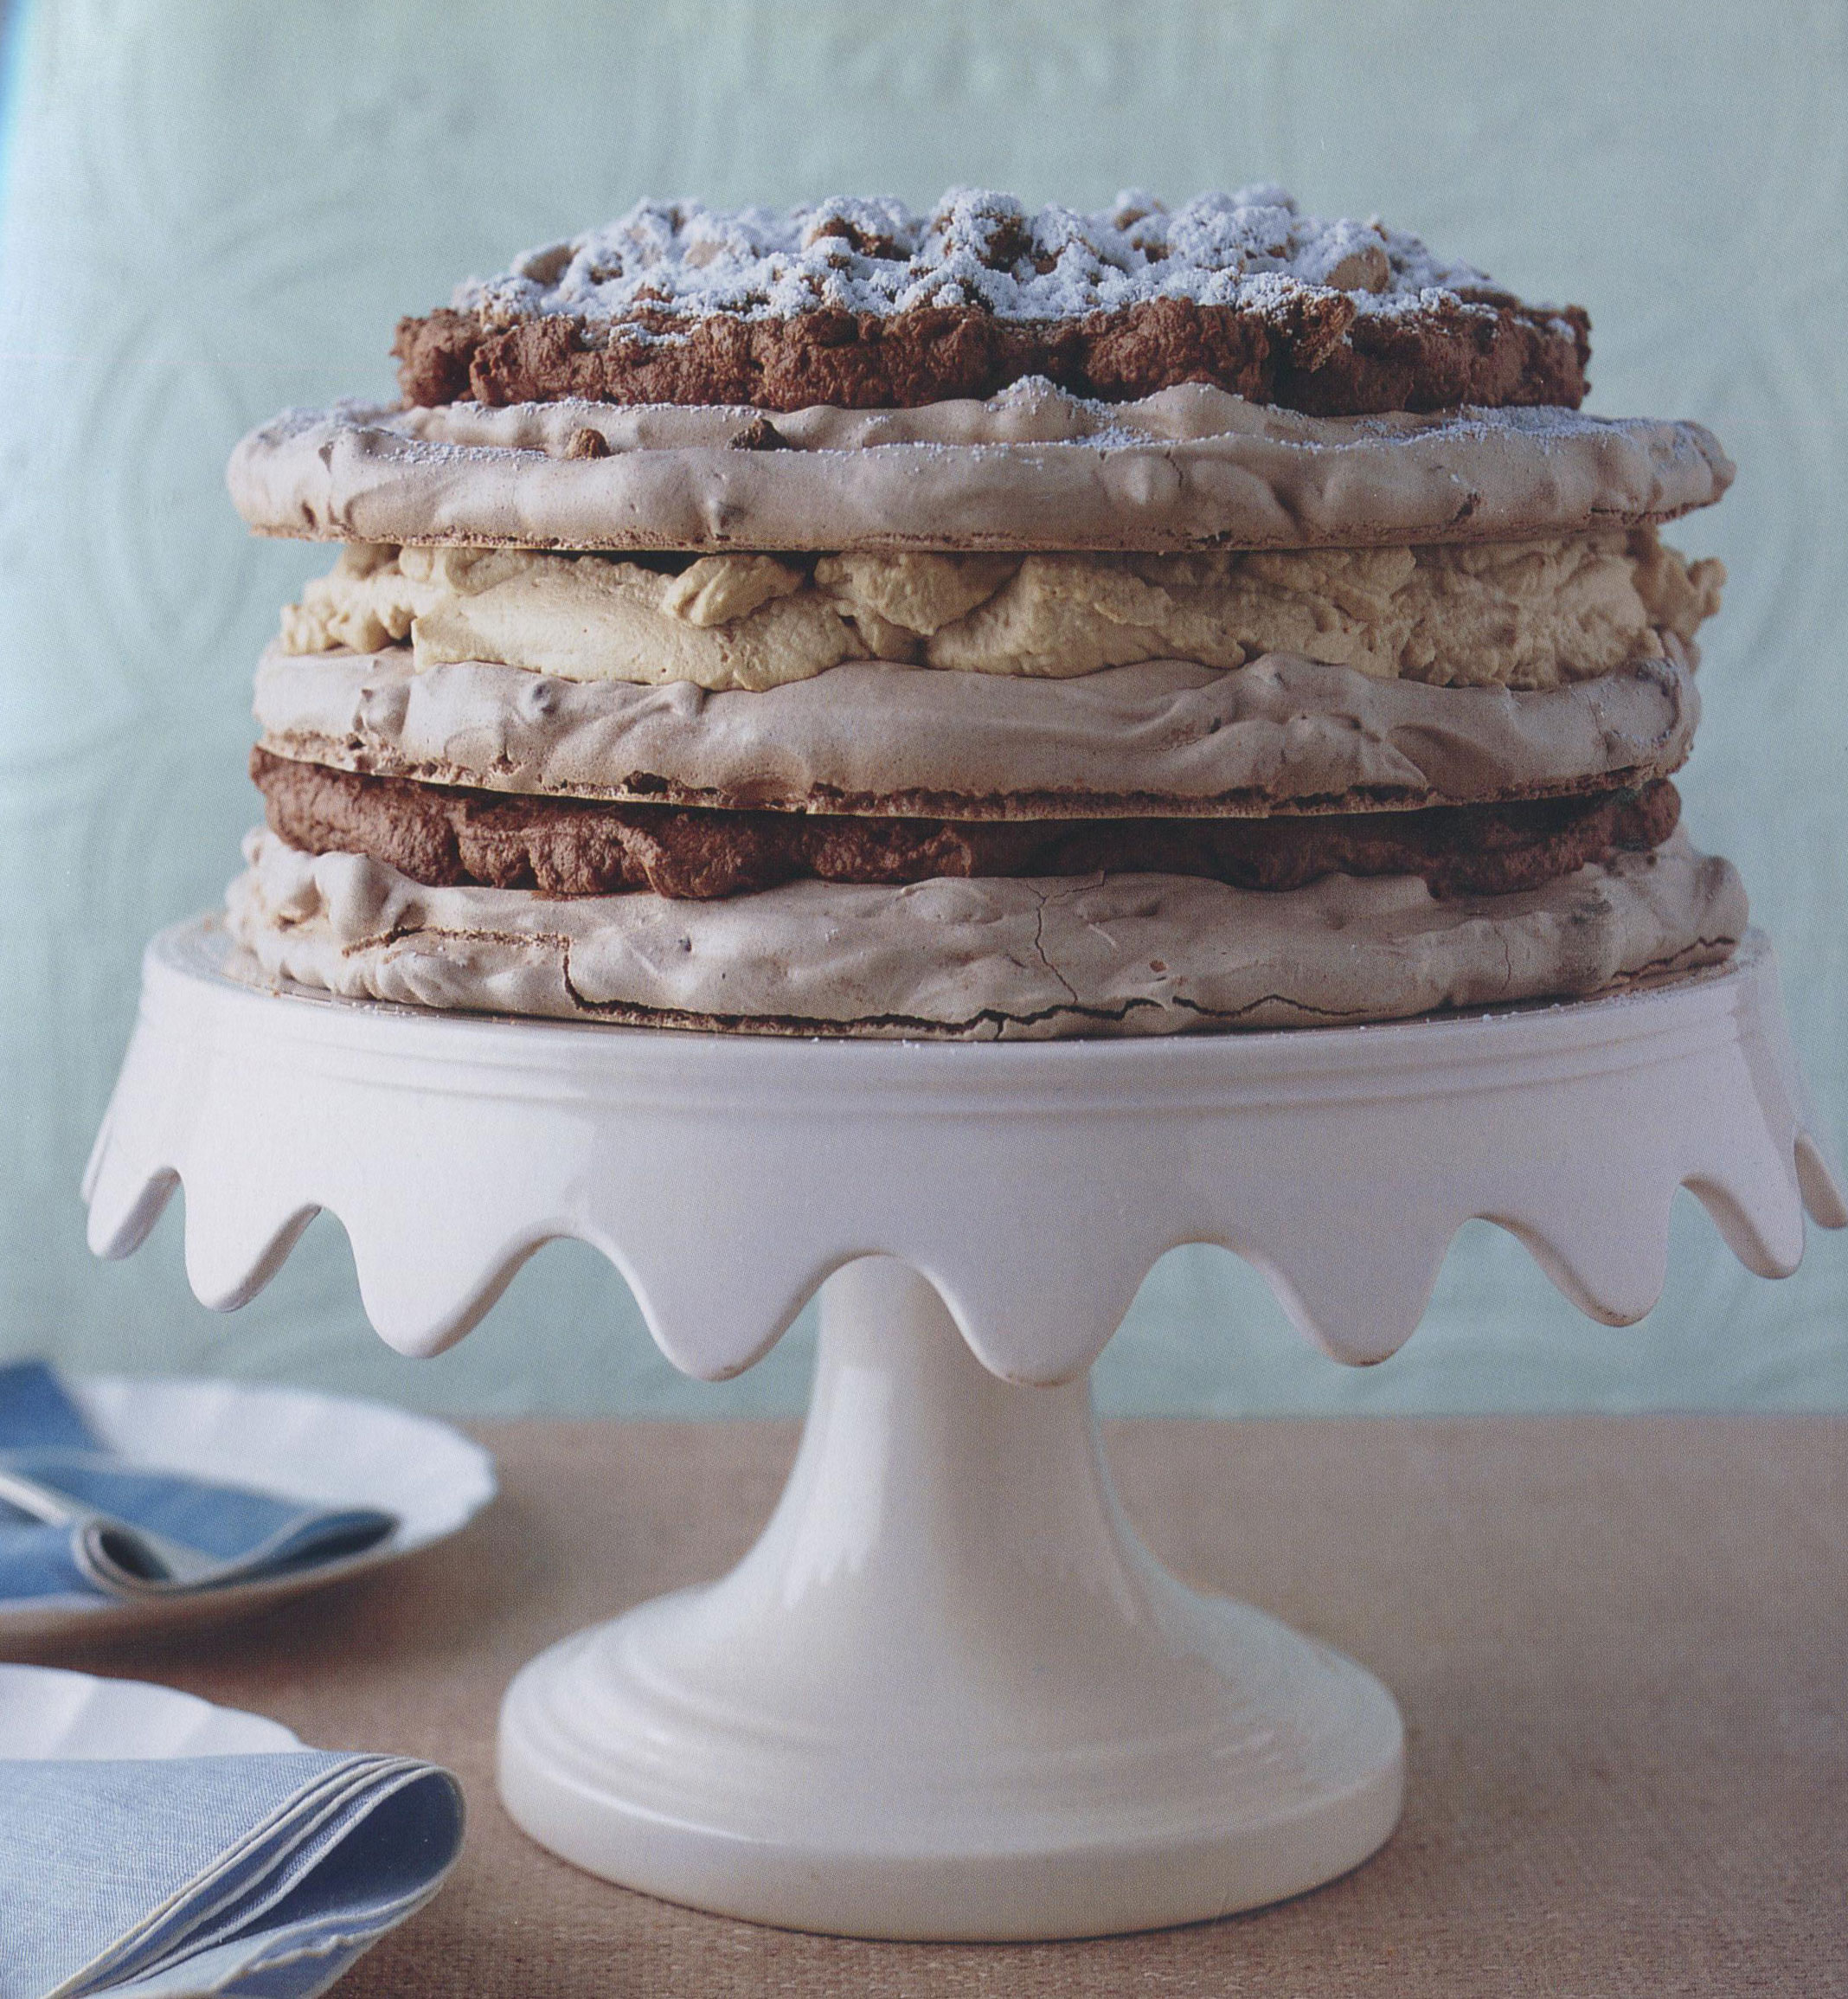 Mocha Chip Meringue Cake from Elinor Klivans